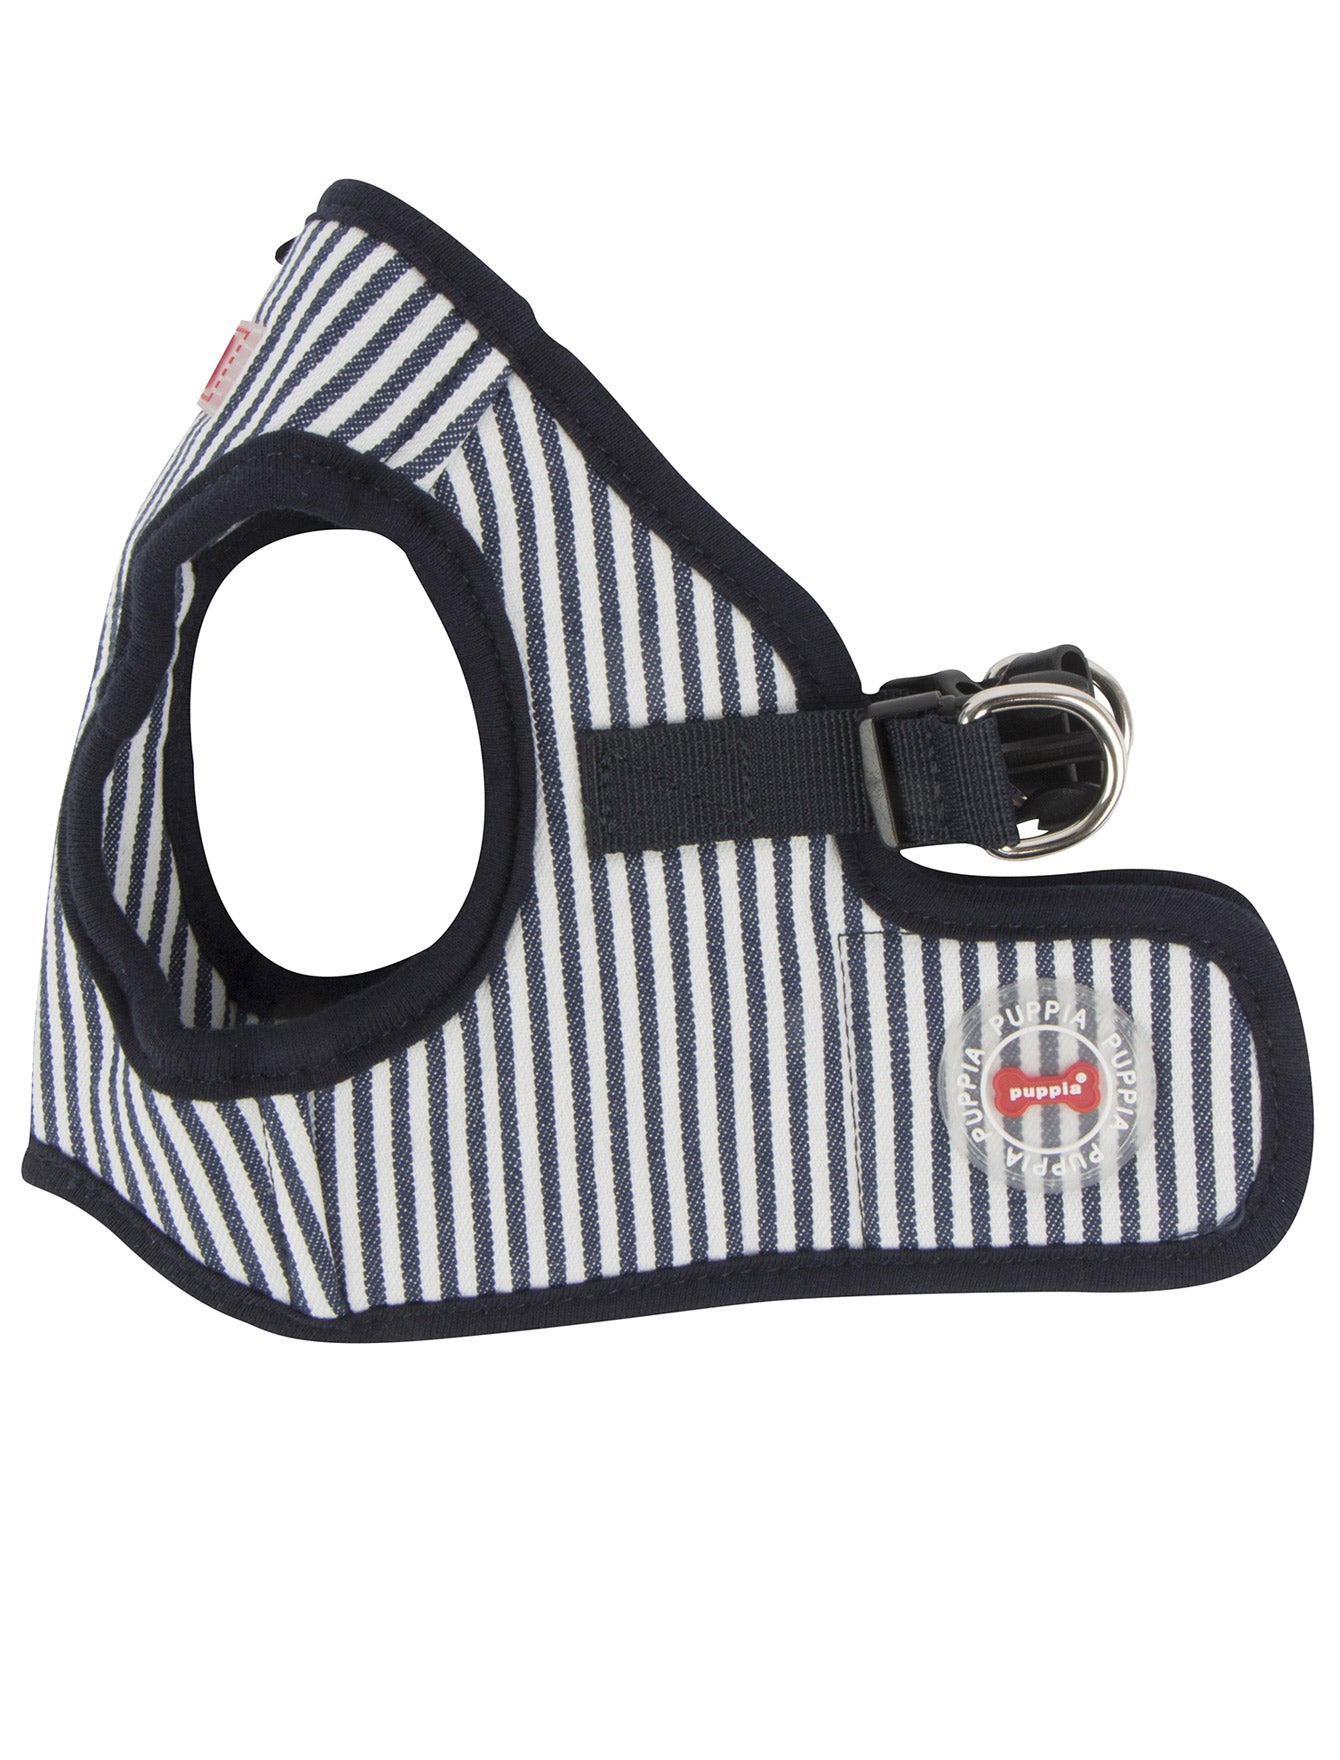 Puppia Stripped Navy Bobby Vest Harness for Dogs (3 Sizes) | Perromart Online Pet Store Singapore